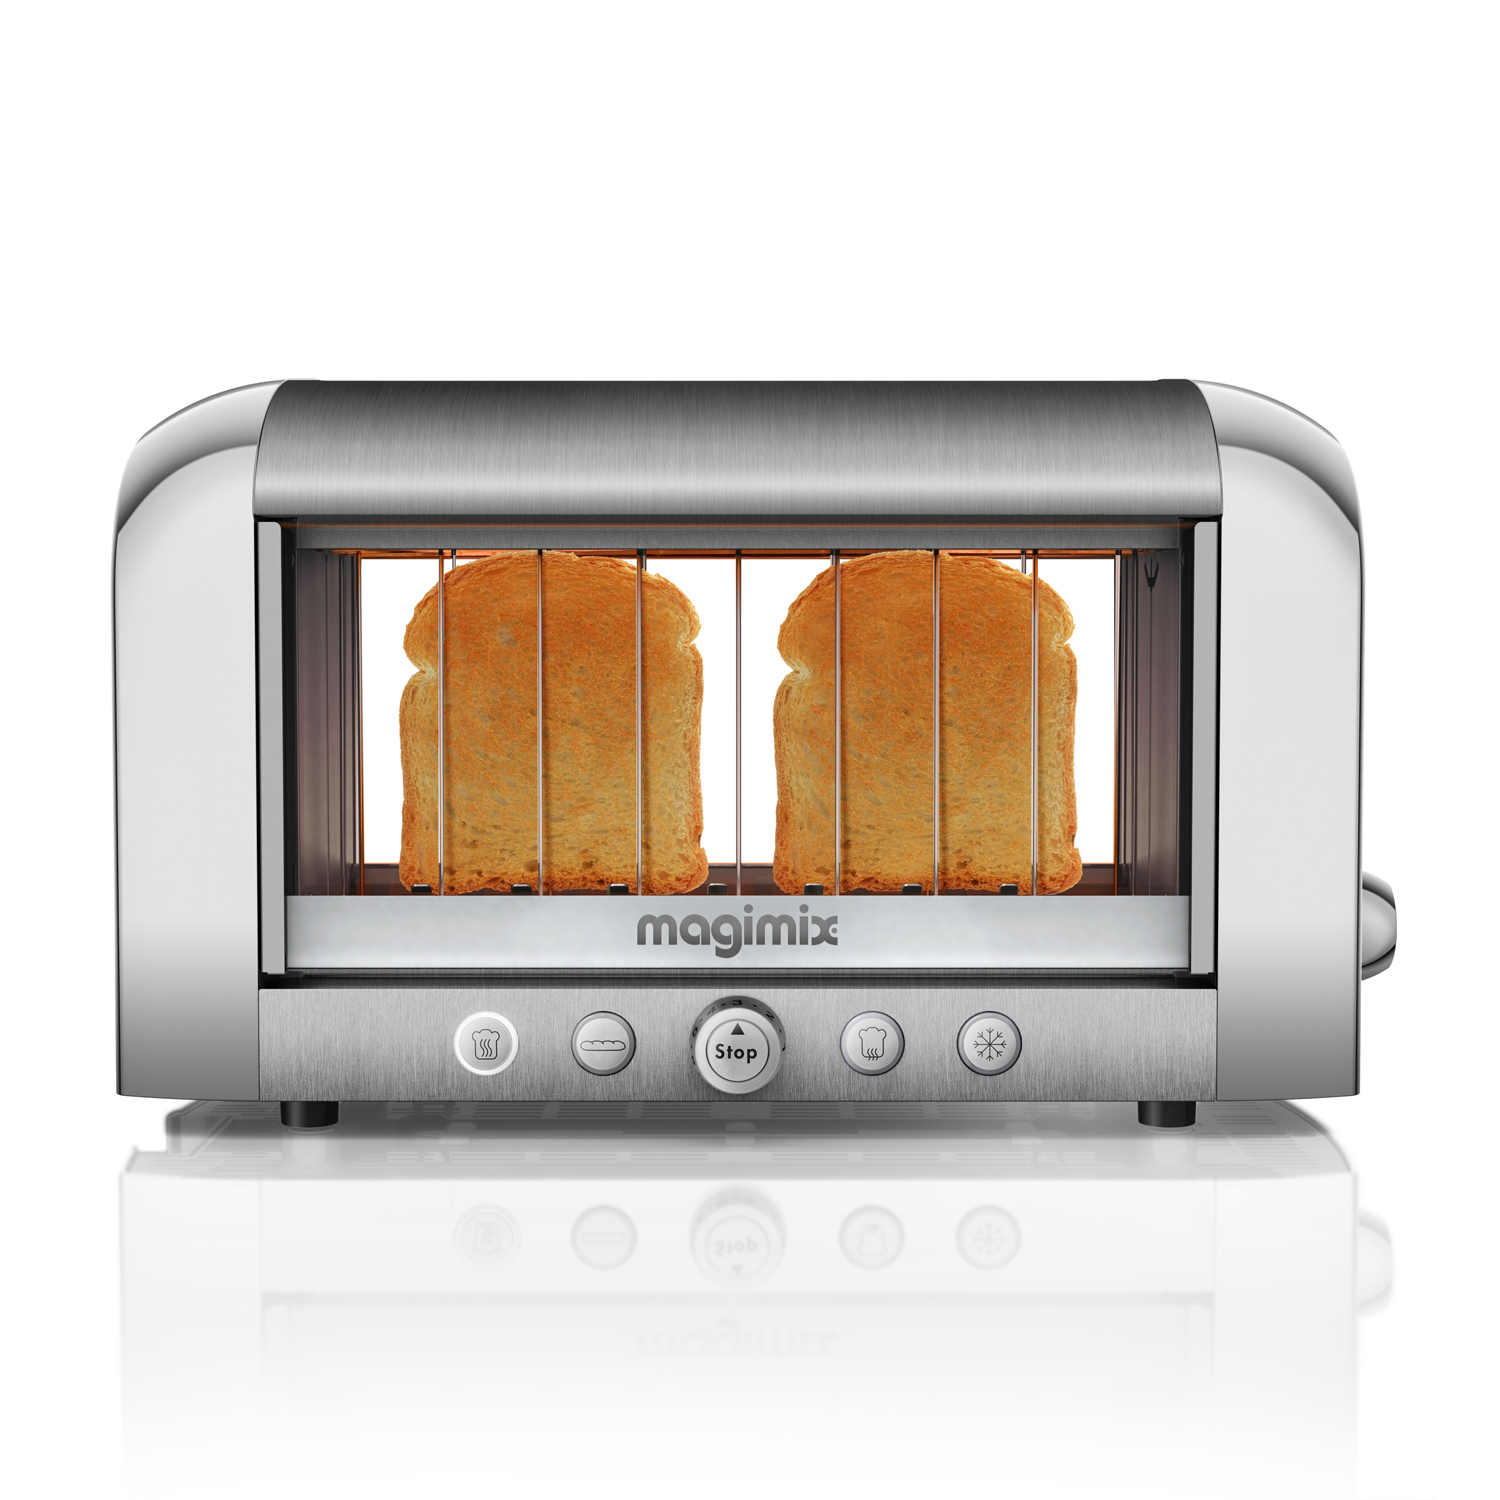 magimix vision see through toaster watch your bread burn. Black Bedroom Furniture Sets. Home Design Ideas